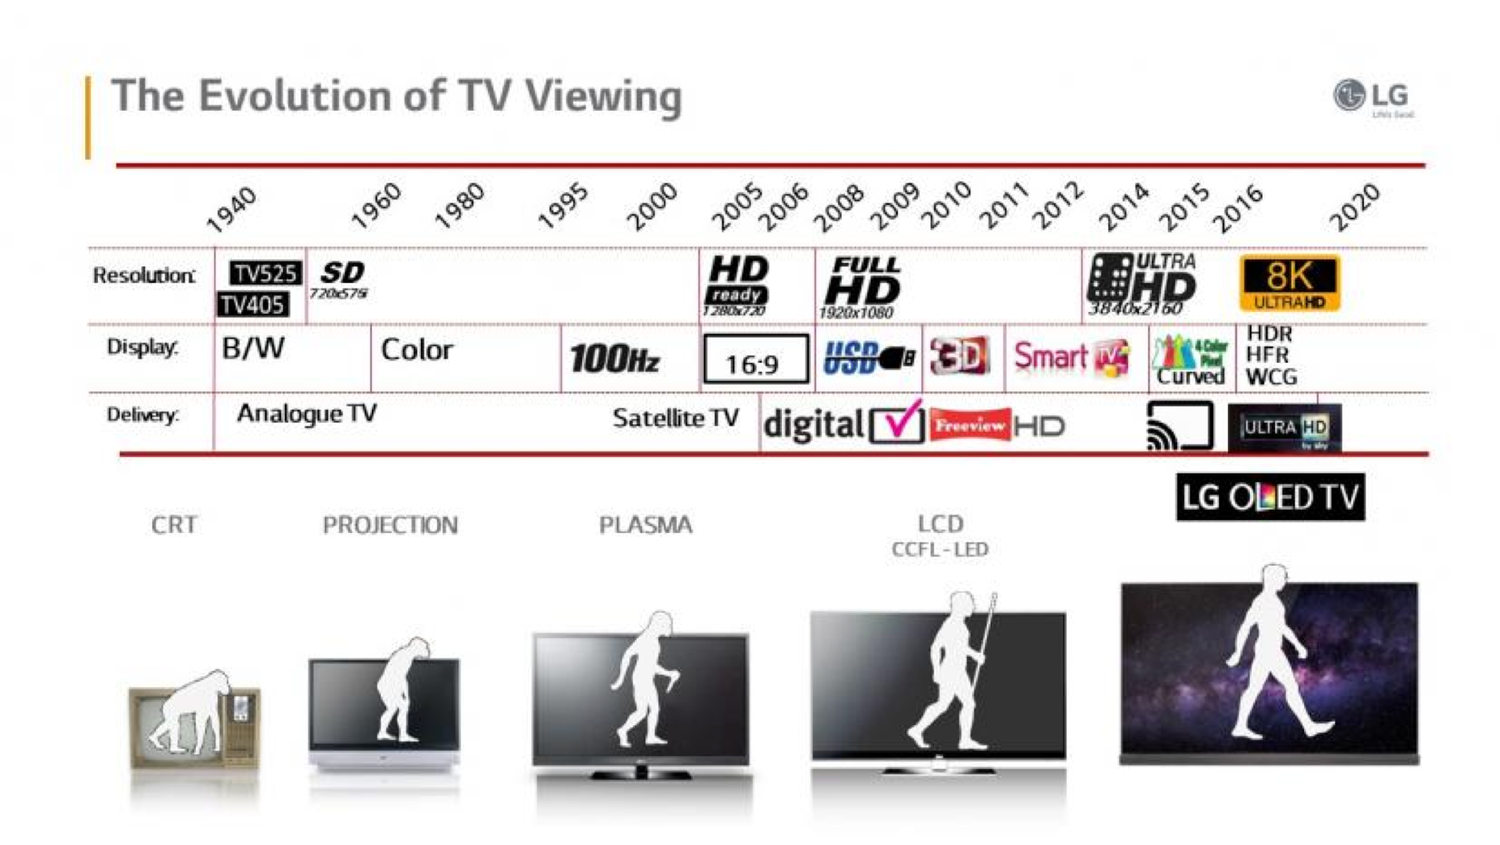 Figure 2: LG's infographic illustrates the evolution of display technology and the launch of next-generation resolutions over time. [3]